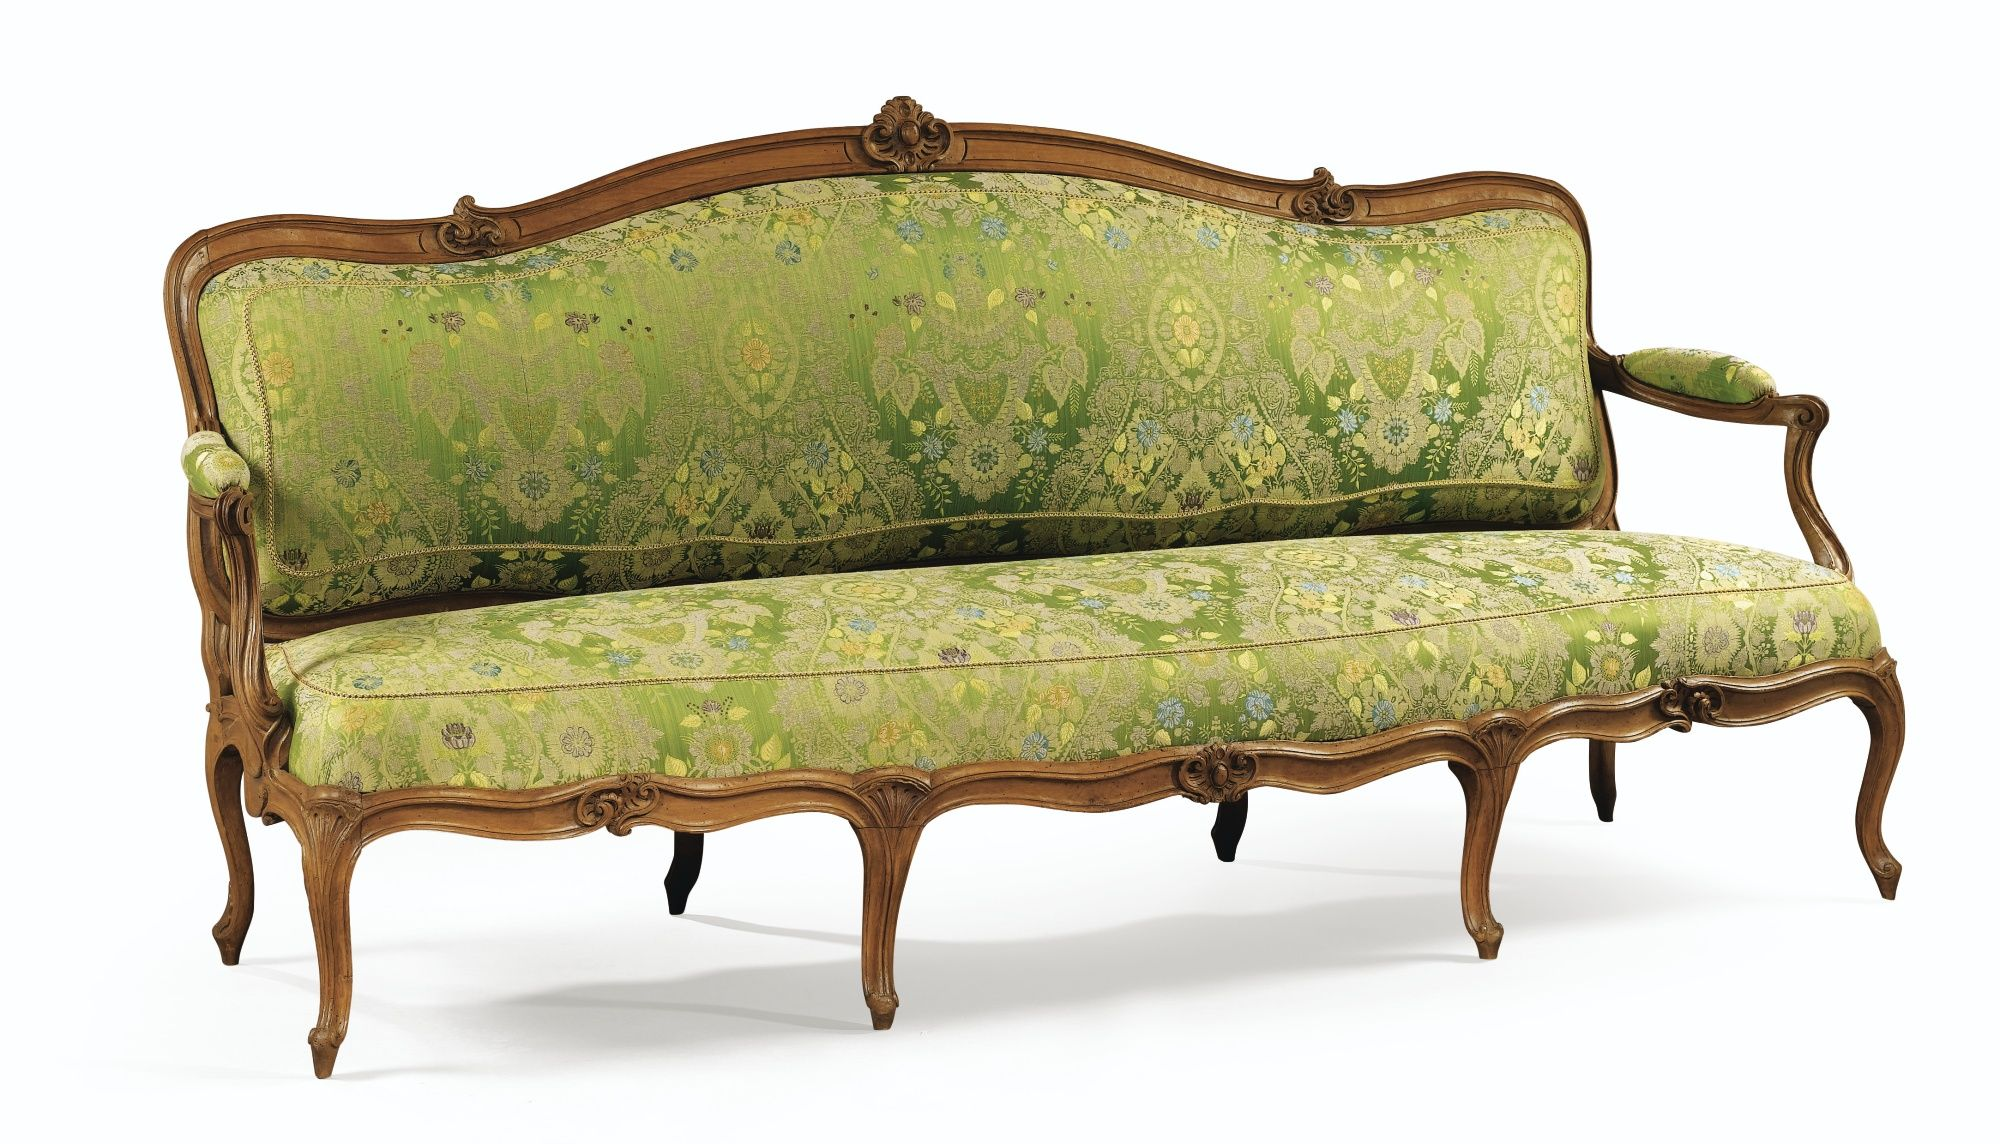 Date Unspecified A LARGE CARVED WOOD SOFA LOUIS XV Estimate 7000 10000 EUR 8763